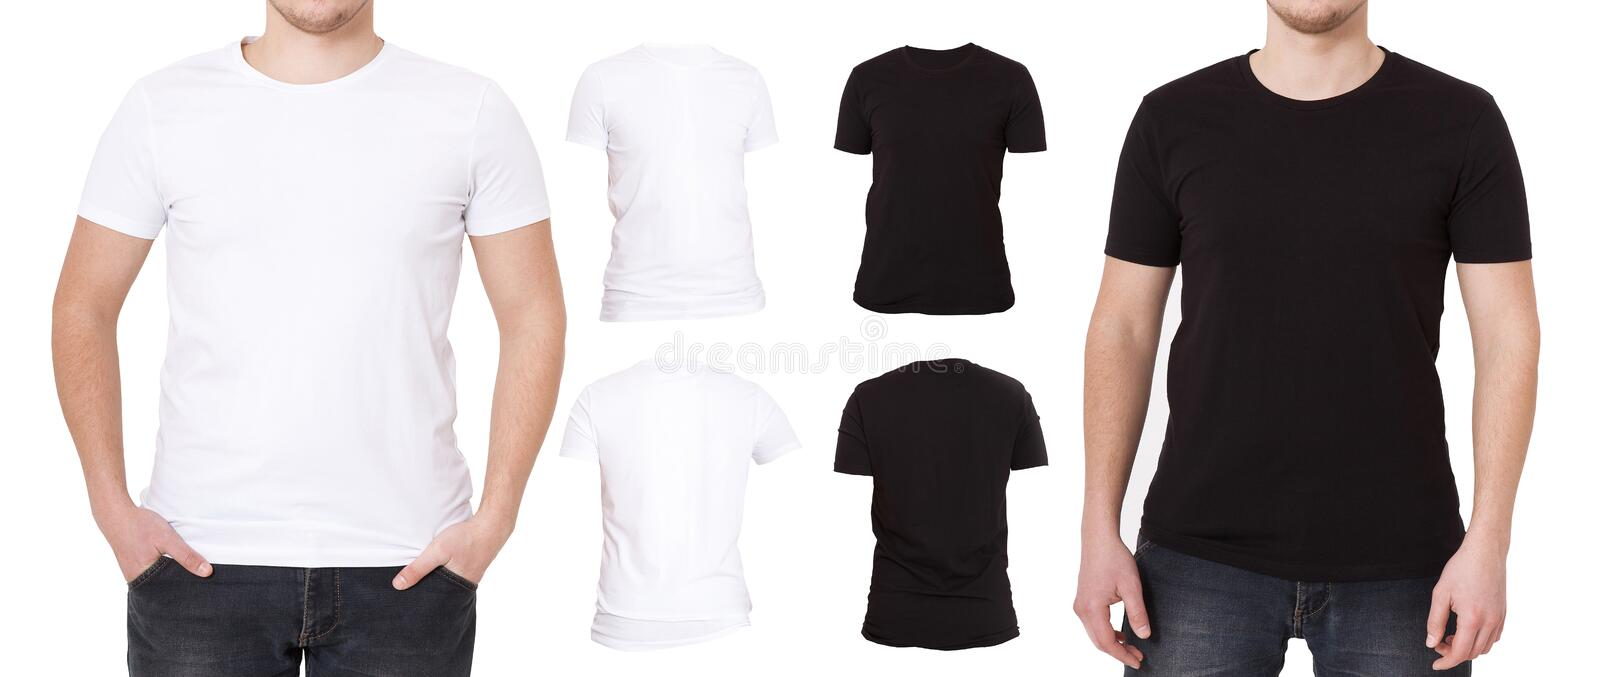 Tshirt set isolated on white background. Back and Front view Shirts. Template, Blank copy space and mock up on t-shirt. Man royalty free stock photos